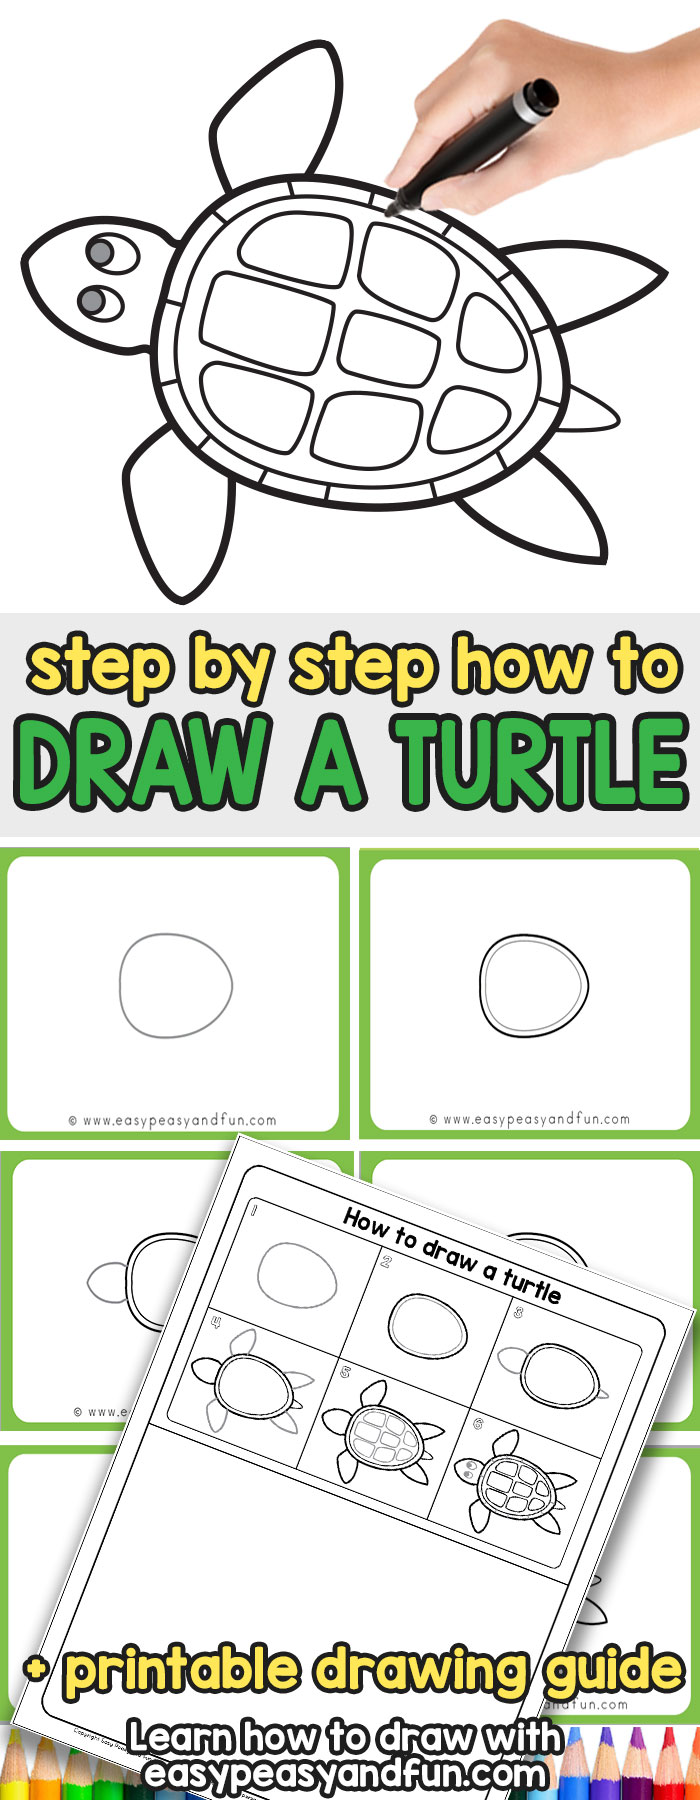 How to Draw a Turtle step by step tutorial for kids and beginners